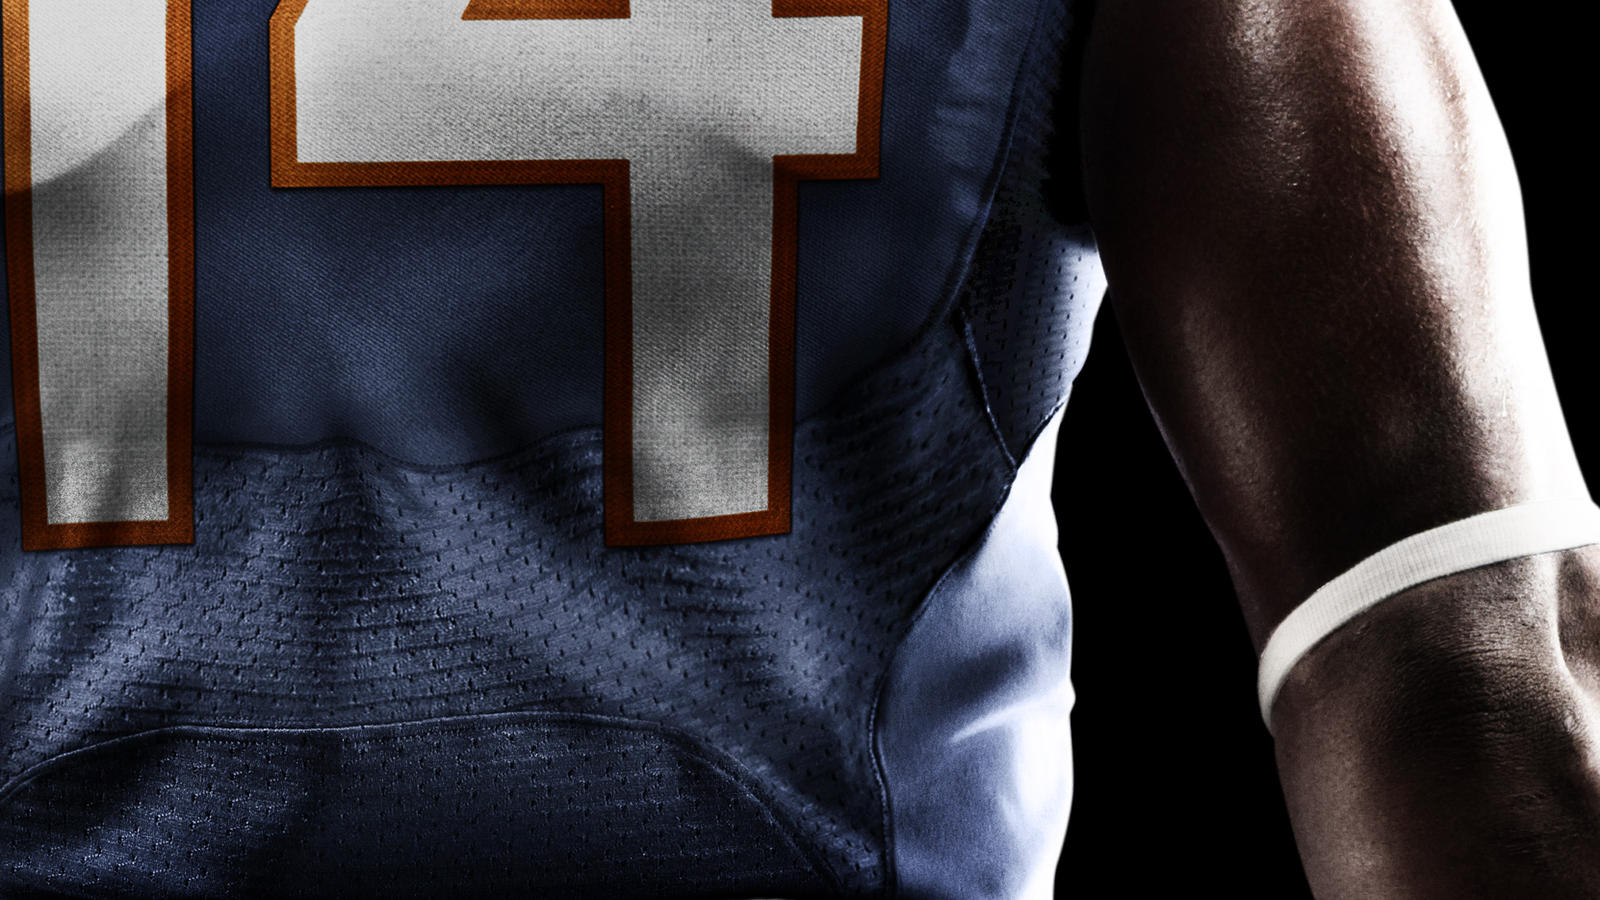 SU12_AT_NFL_UNIFORM_ZONE_VENT_BEARS